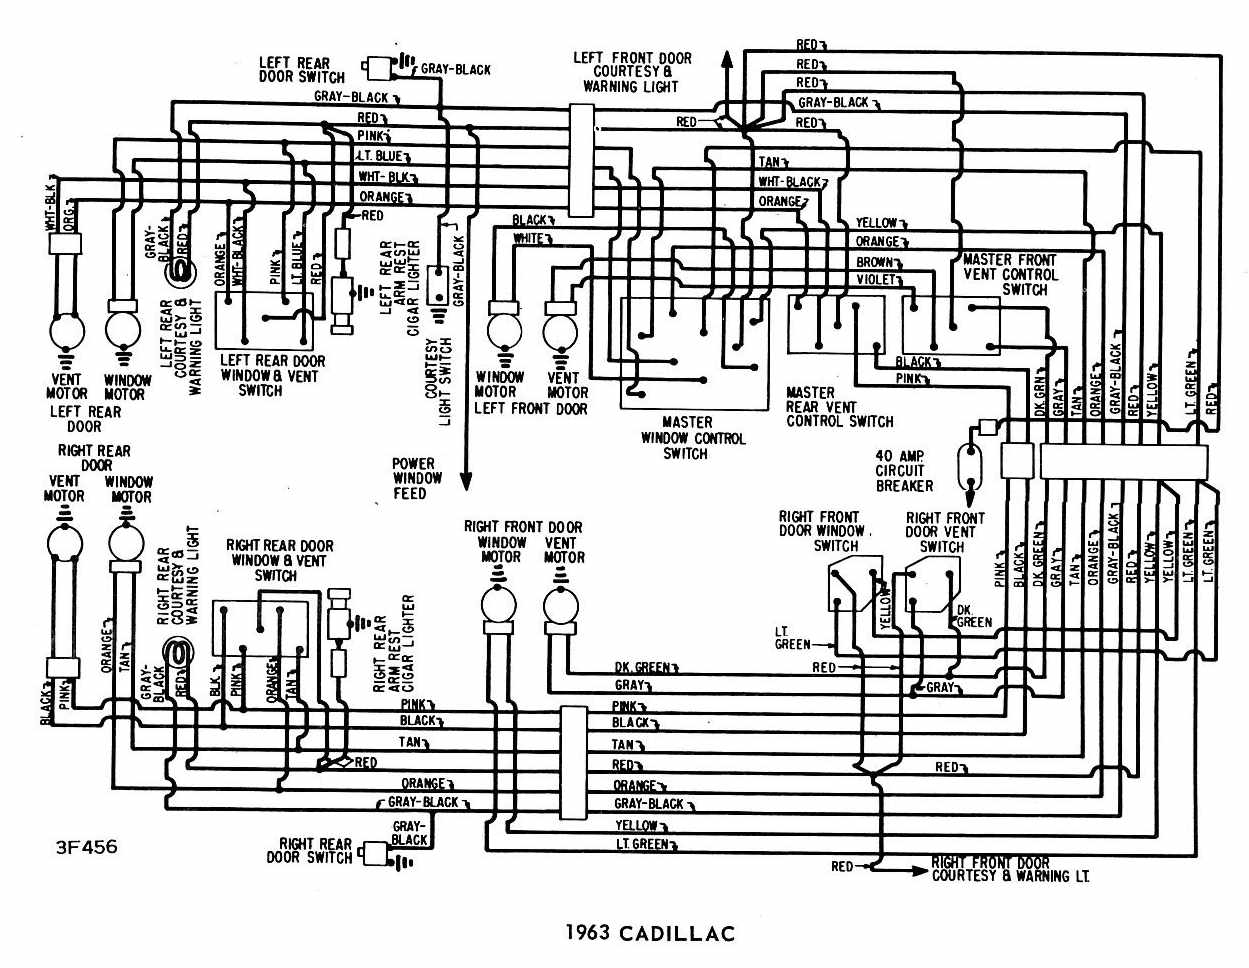 download Cadillac 1963 Windows circuit Wiring Diagram